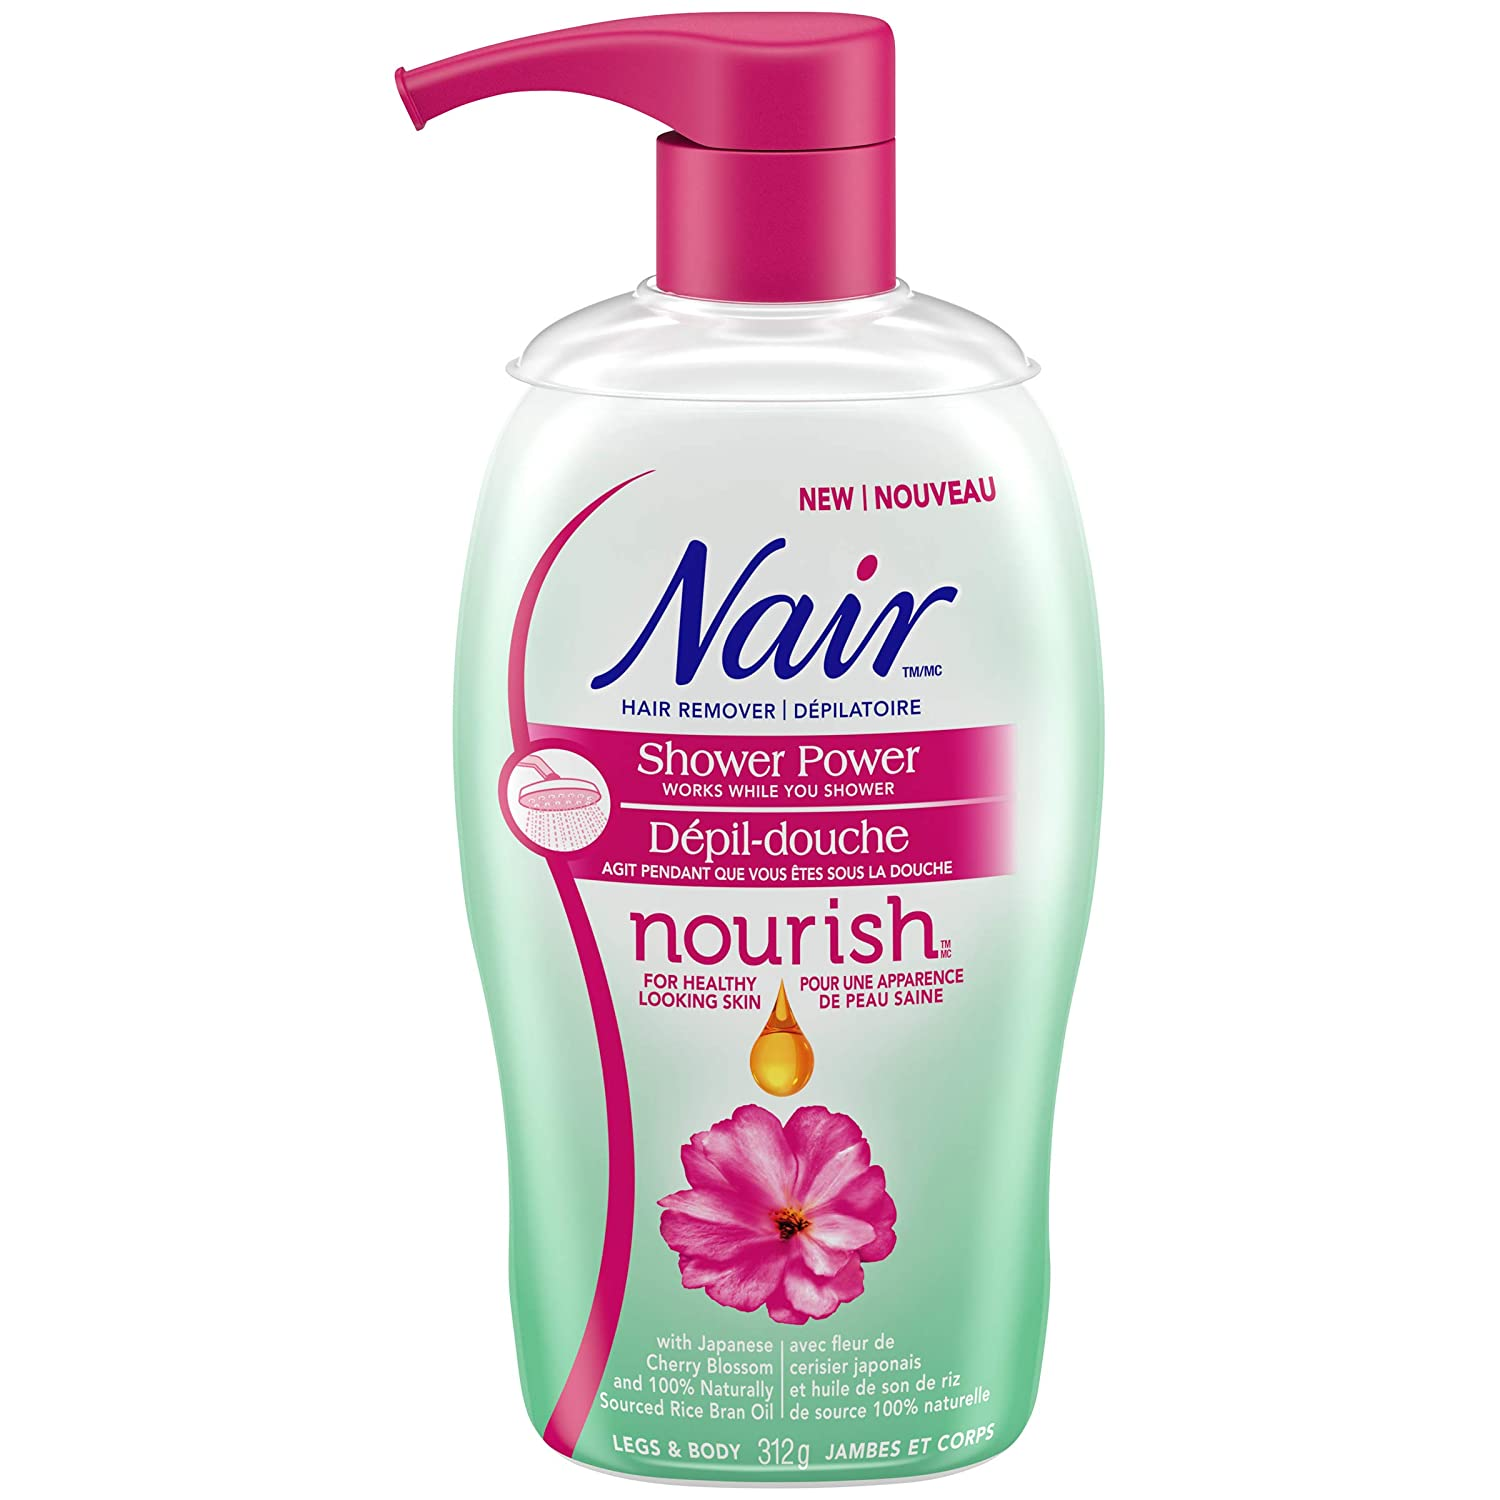 Nair Nourish Shower Power Hair Remover for Legs & Body with Japanese Cherry Blossom and Rice Bran Oil , 312-g Church & Dwight CA